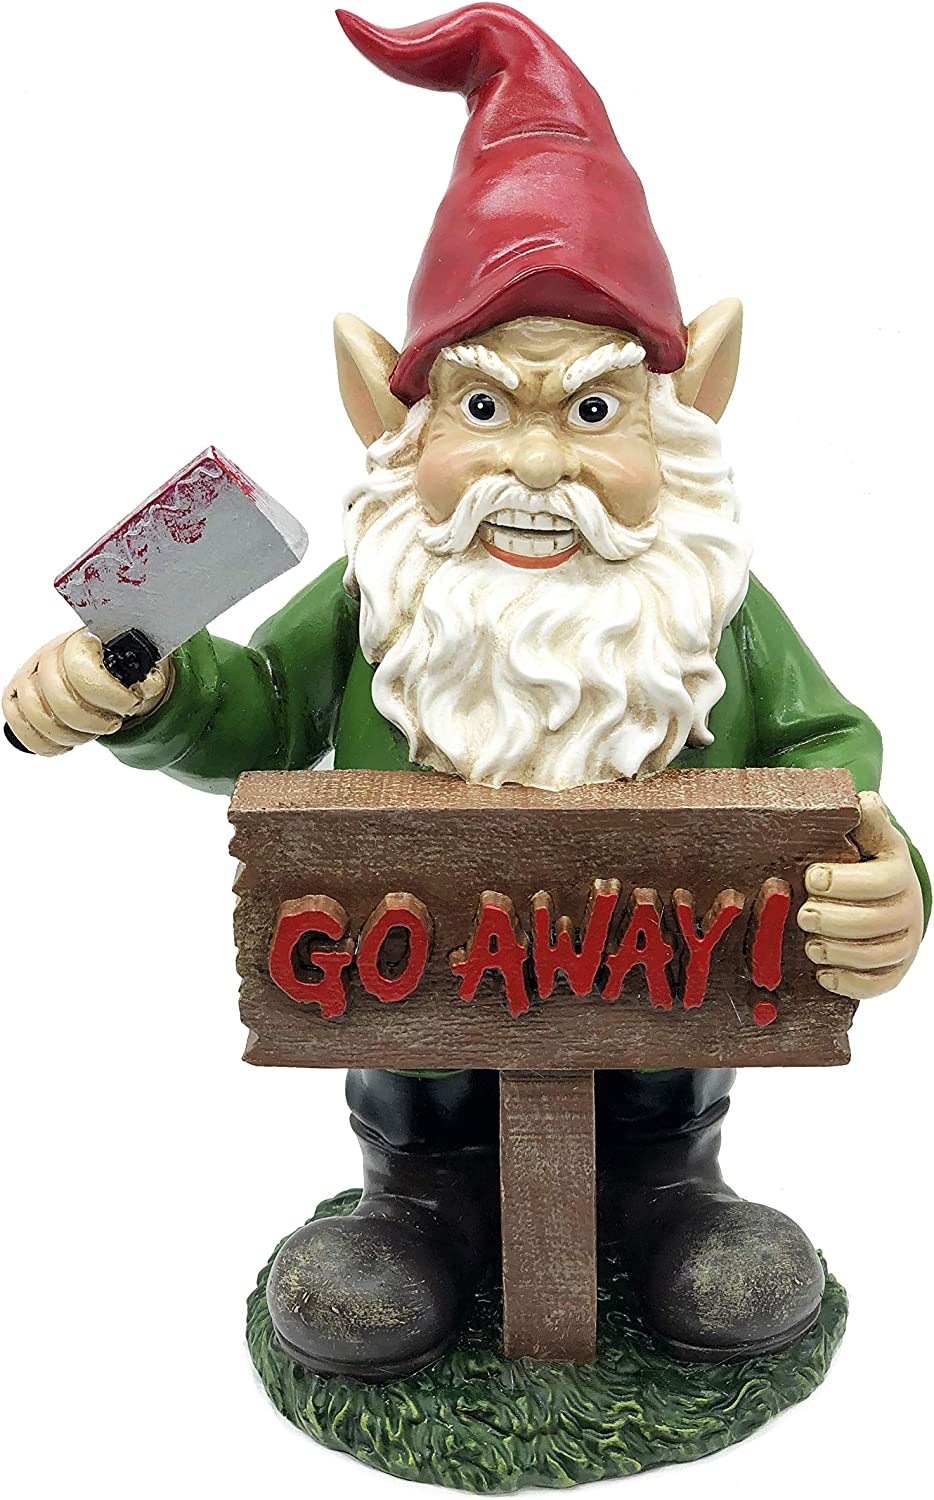 FICITI Angry Gnome with Knife Go Away Garden Lawn Gnome Statue - 10 Inches